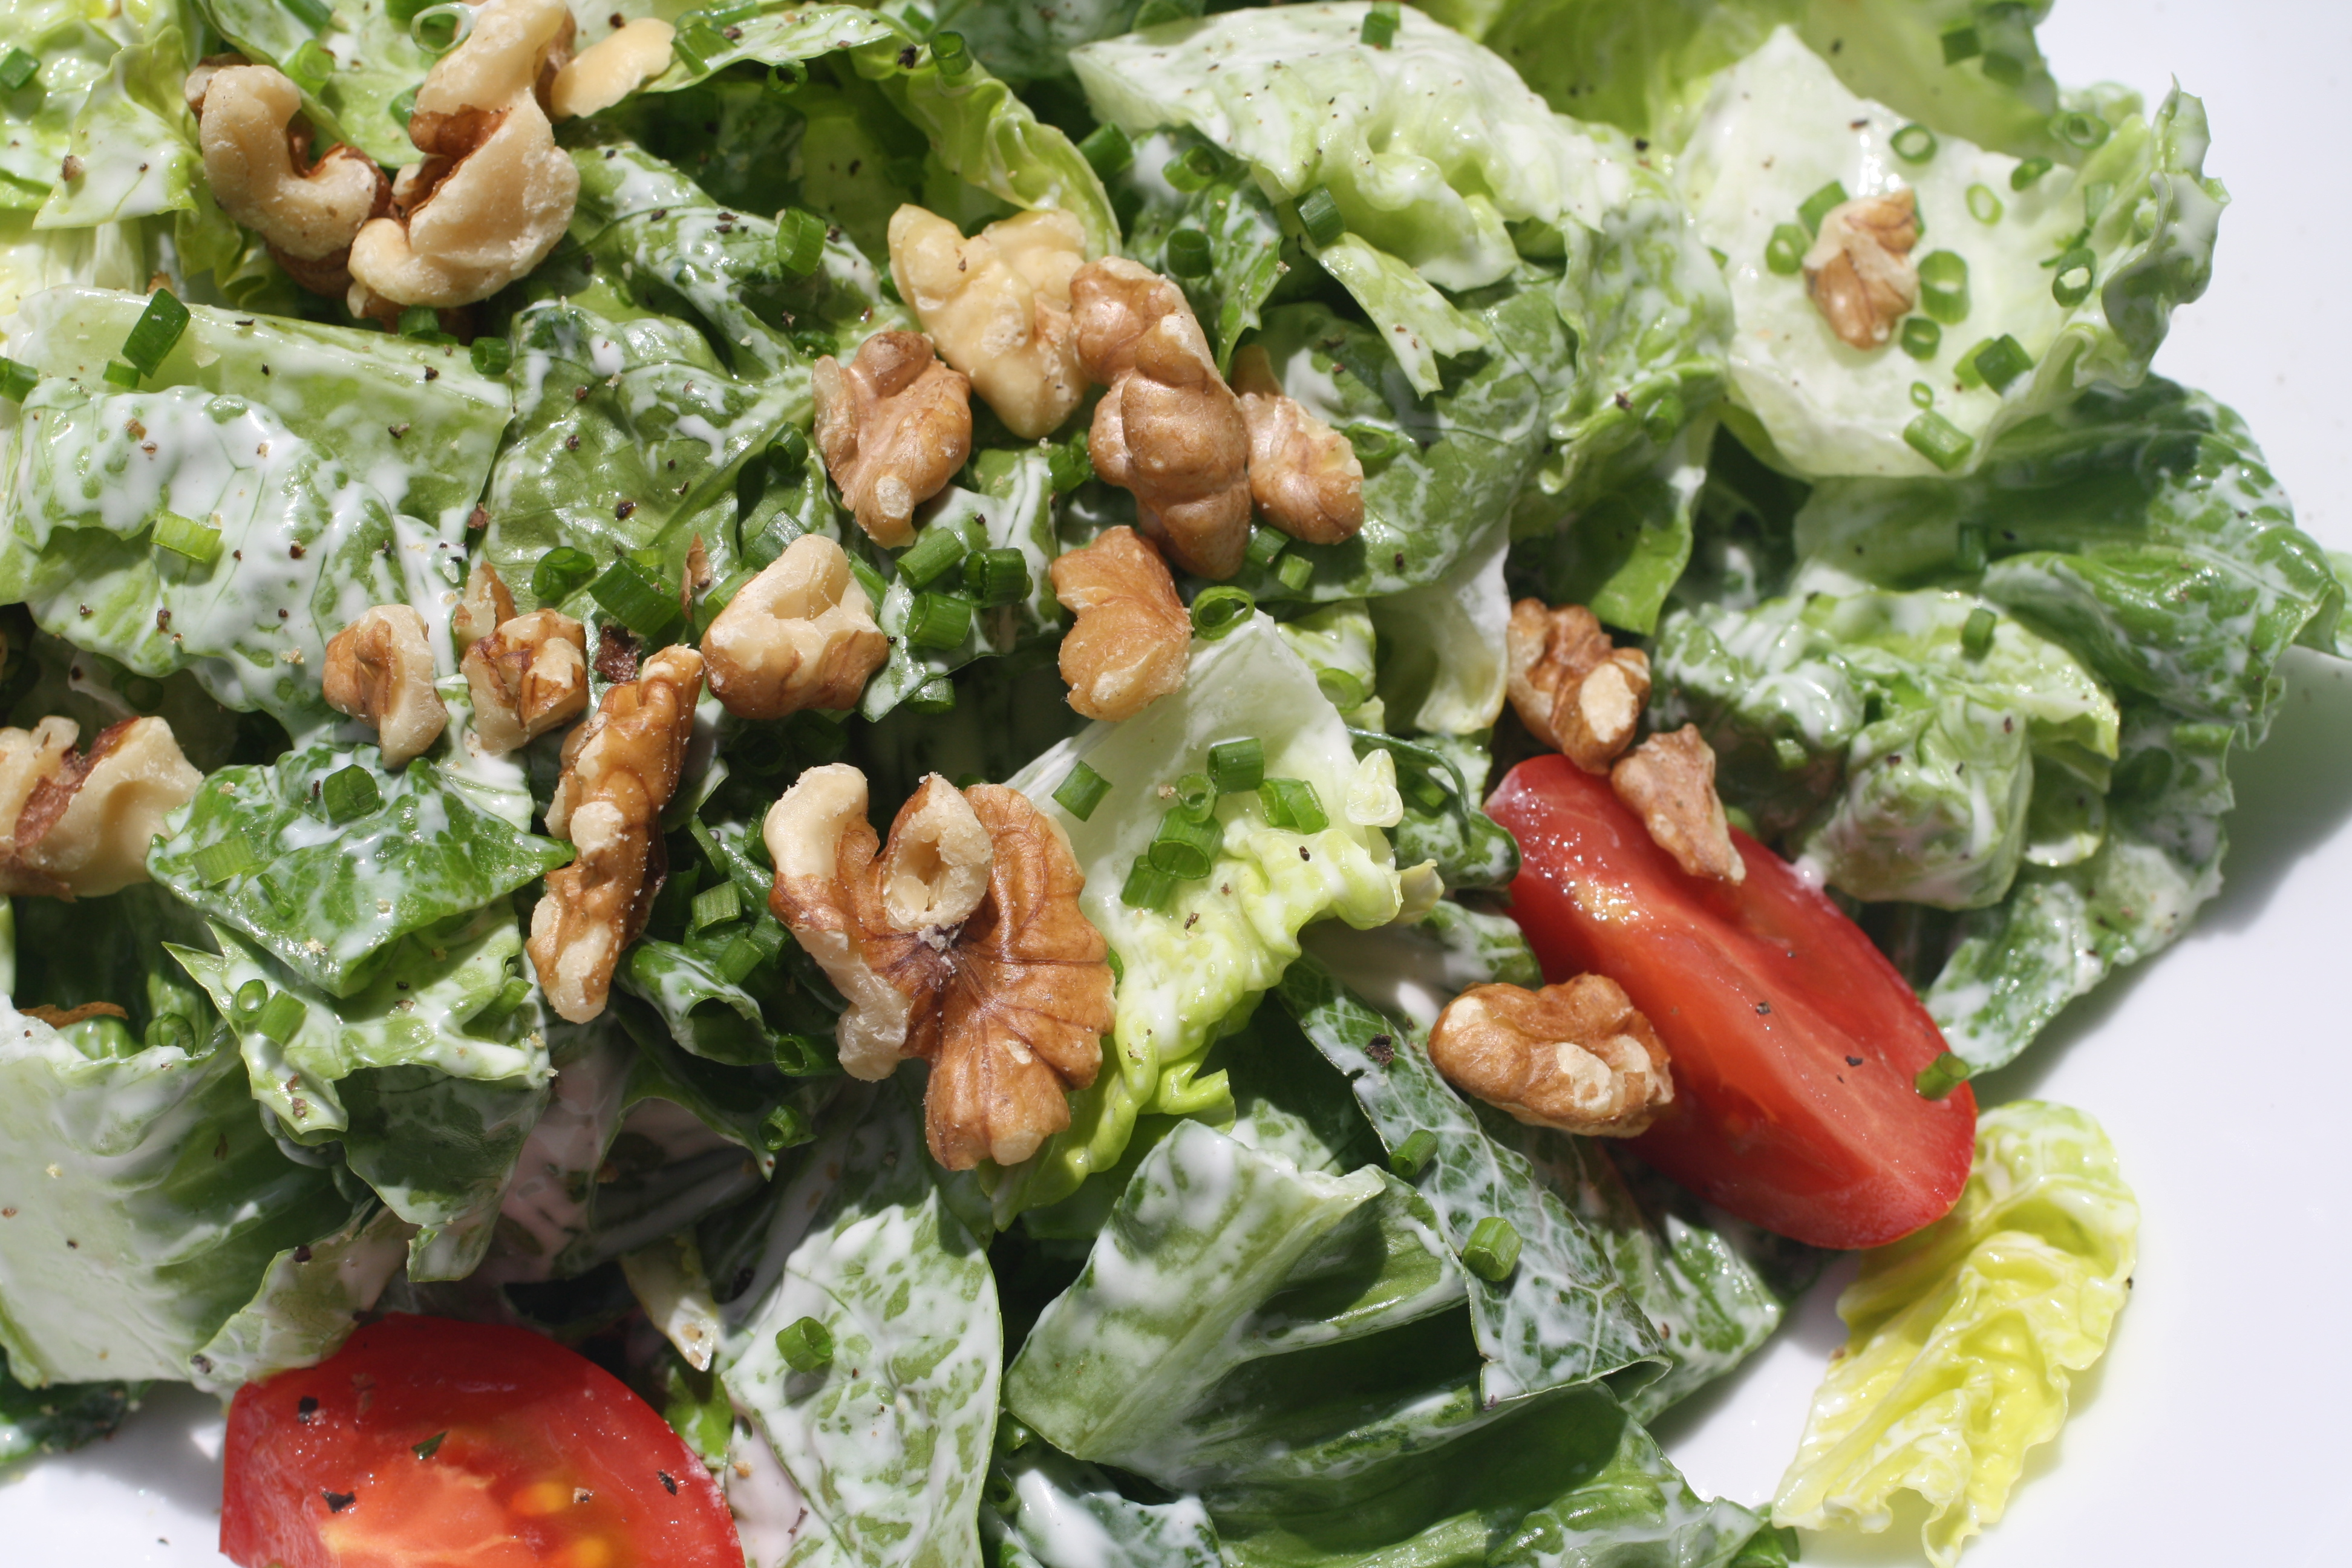 Salad with Creamy Goat Cheese Dressing